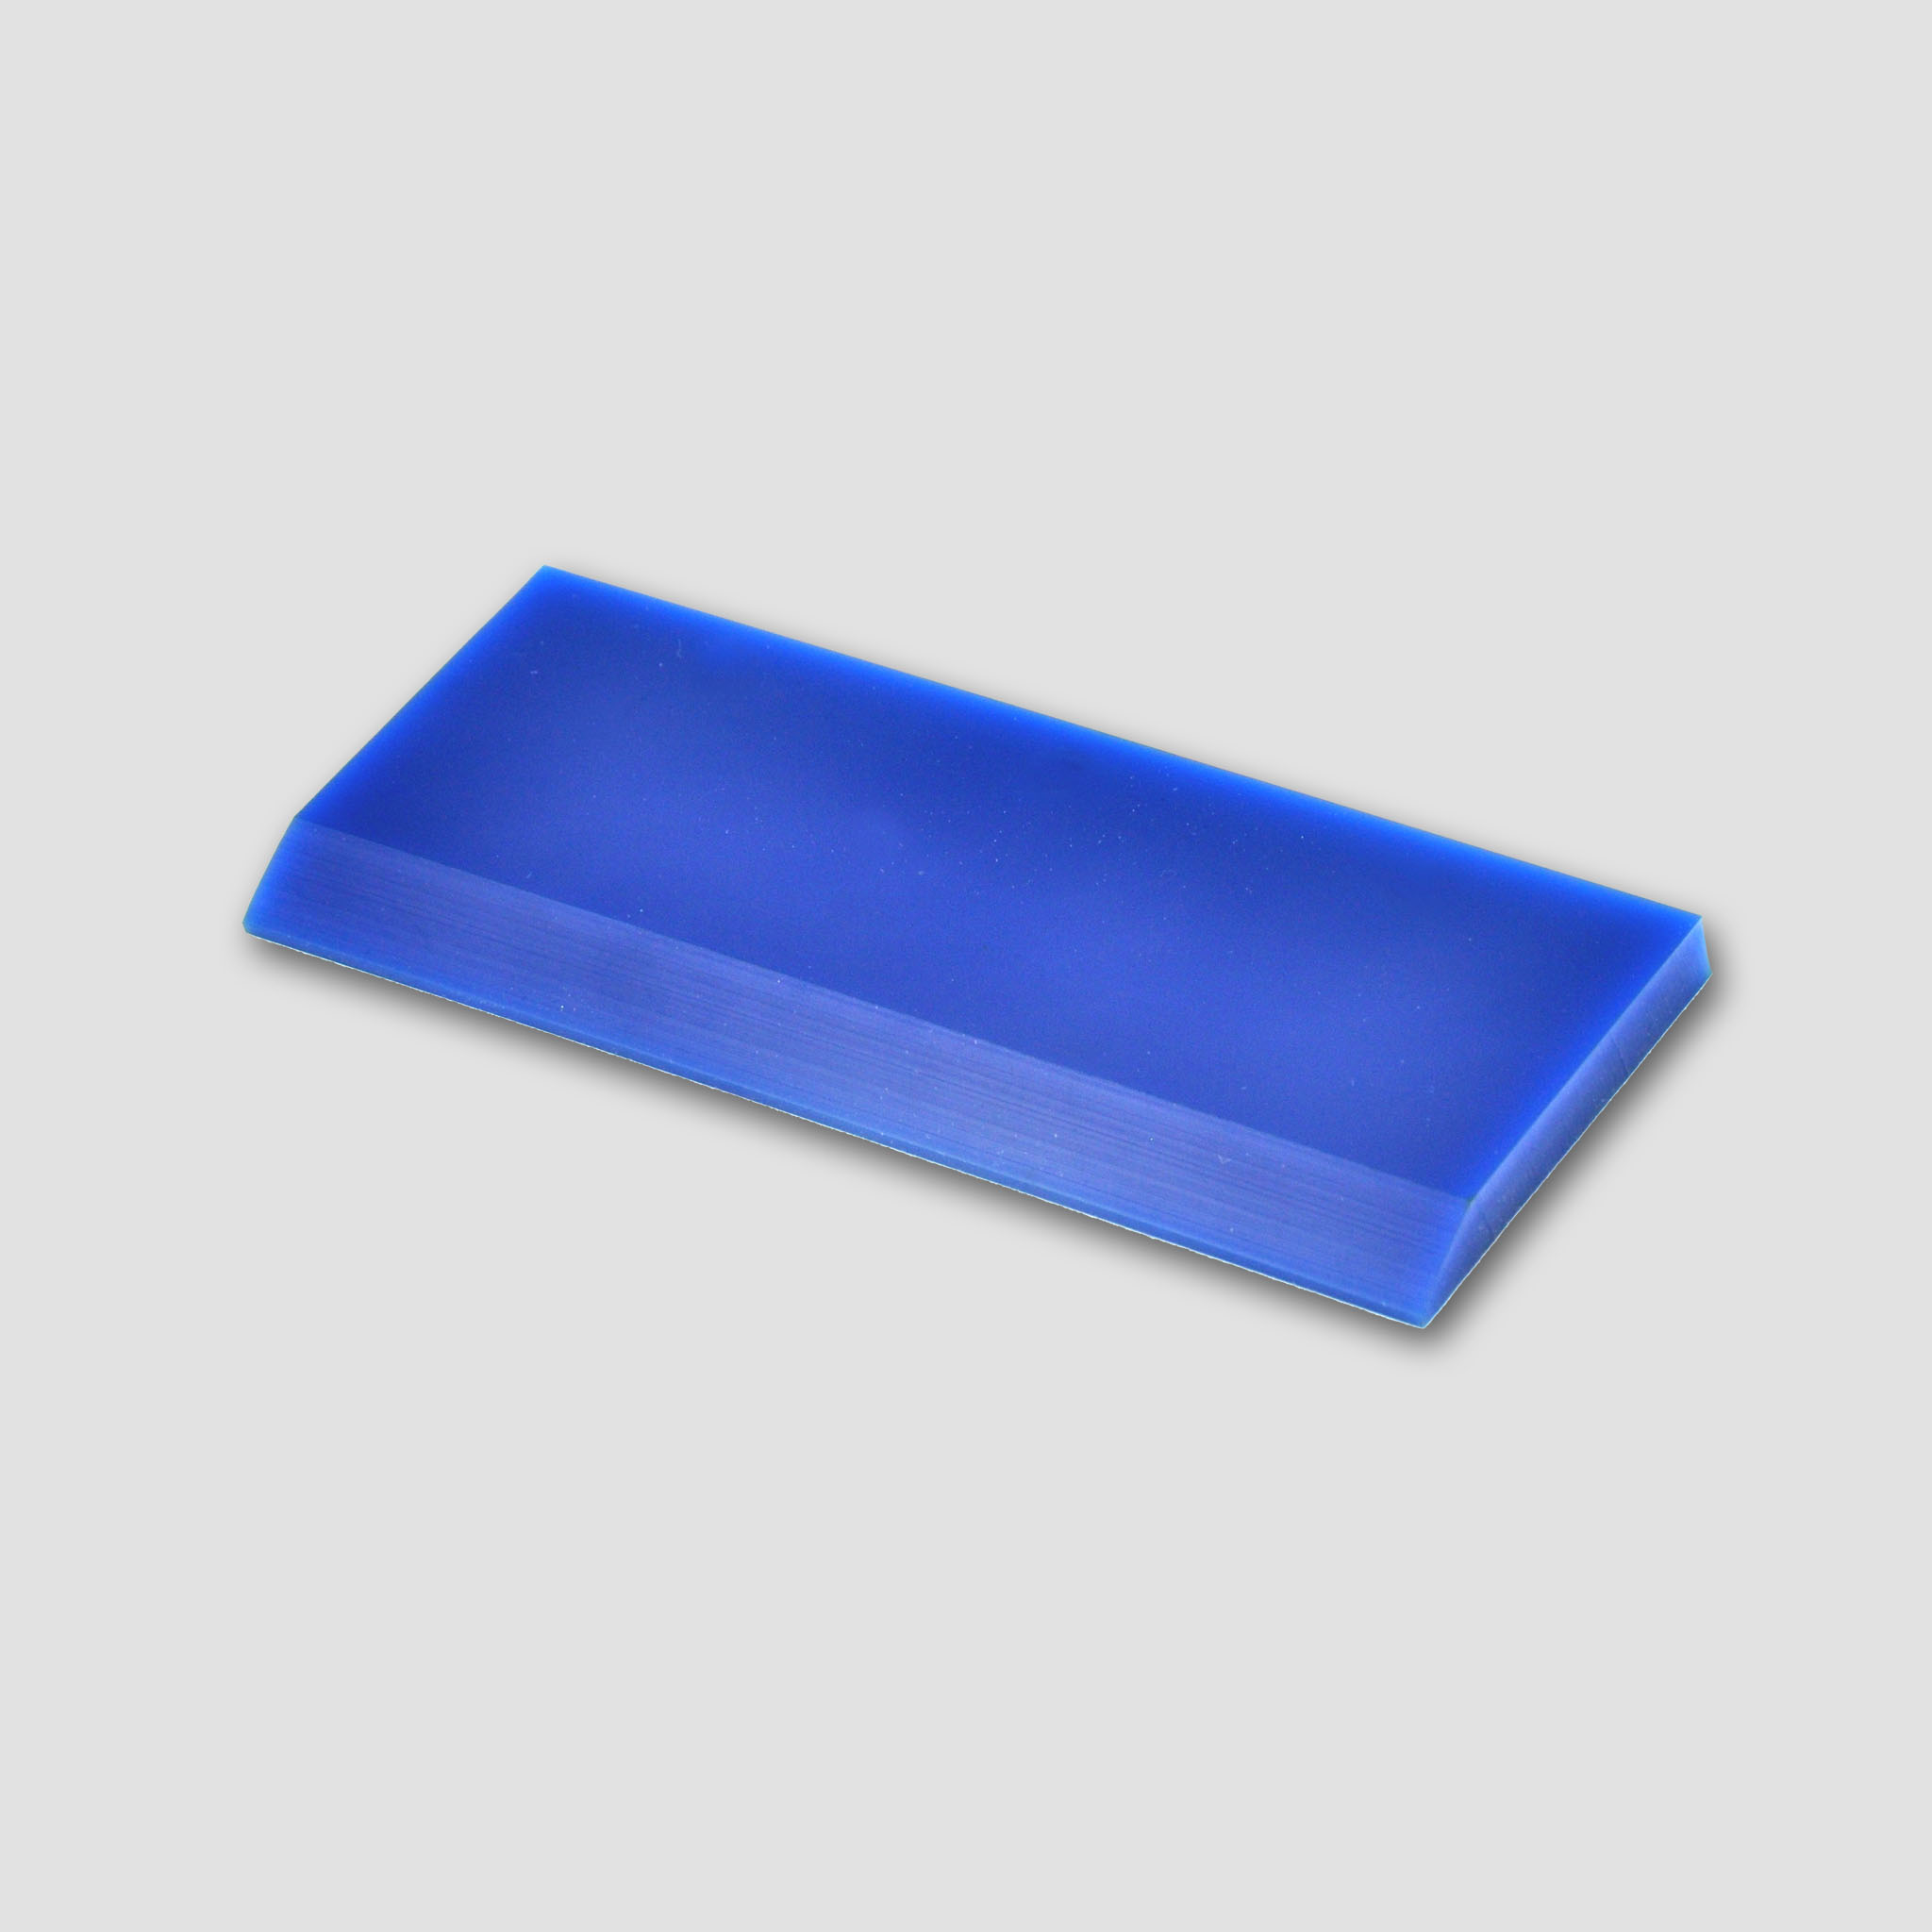 Products Caright Tinting Tools Co Ltd